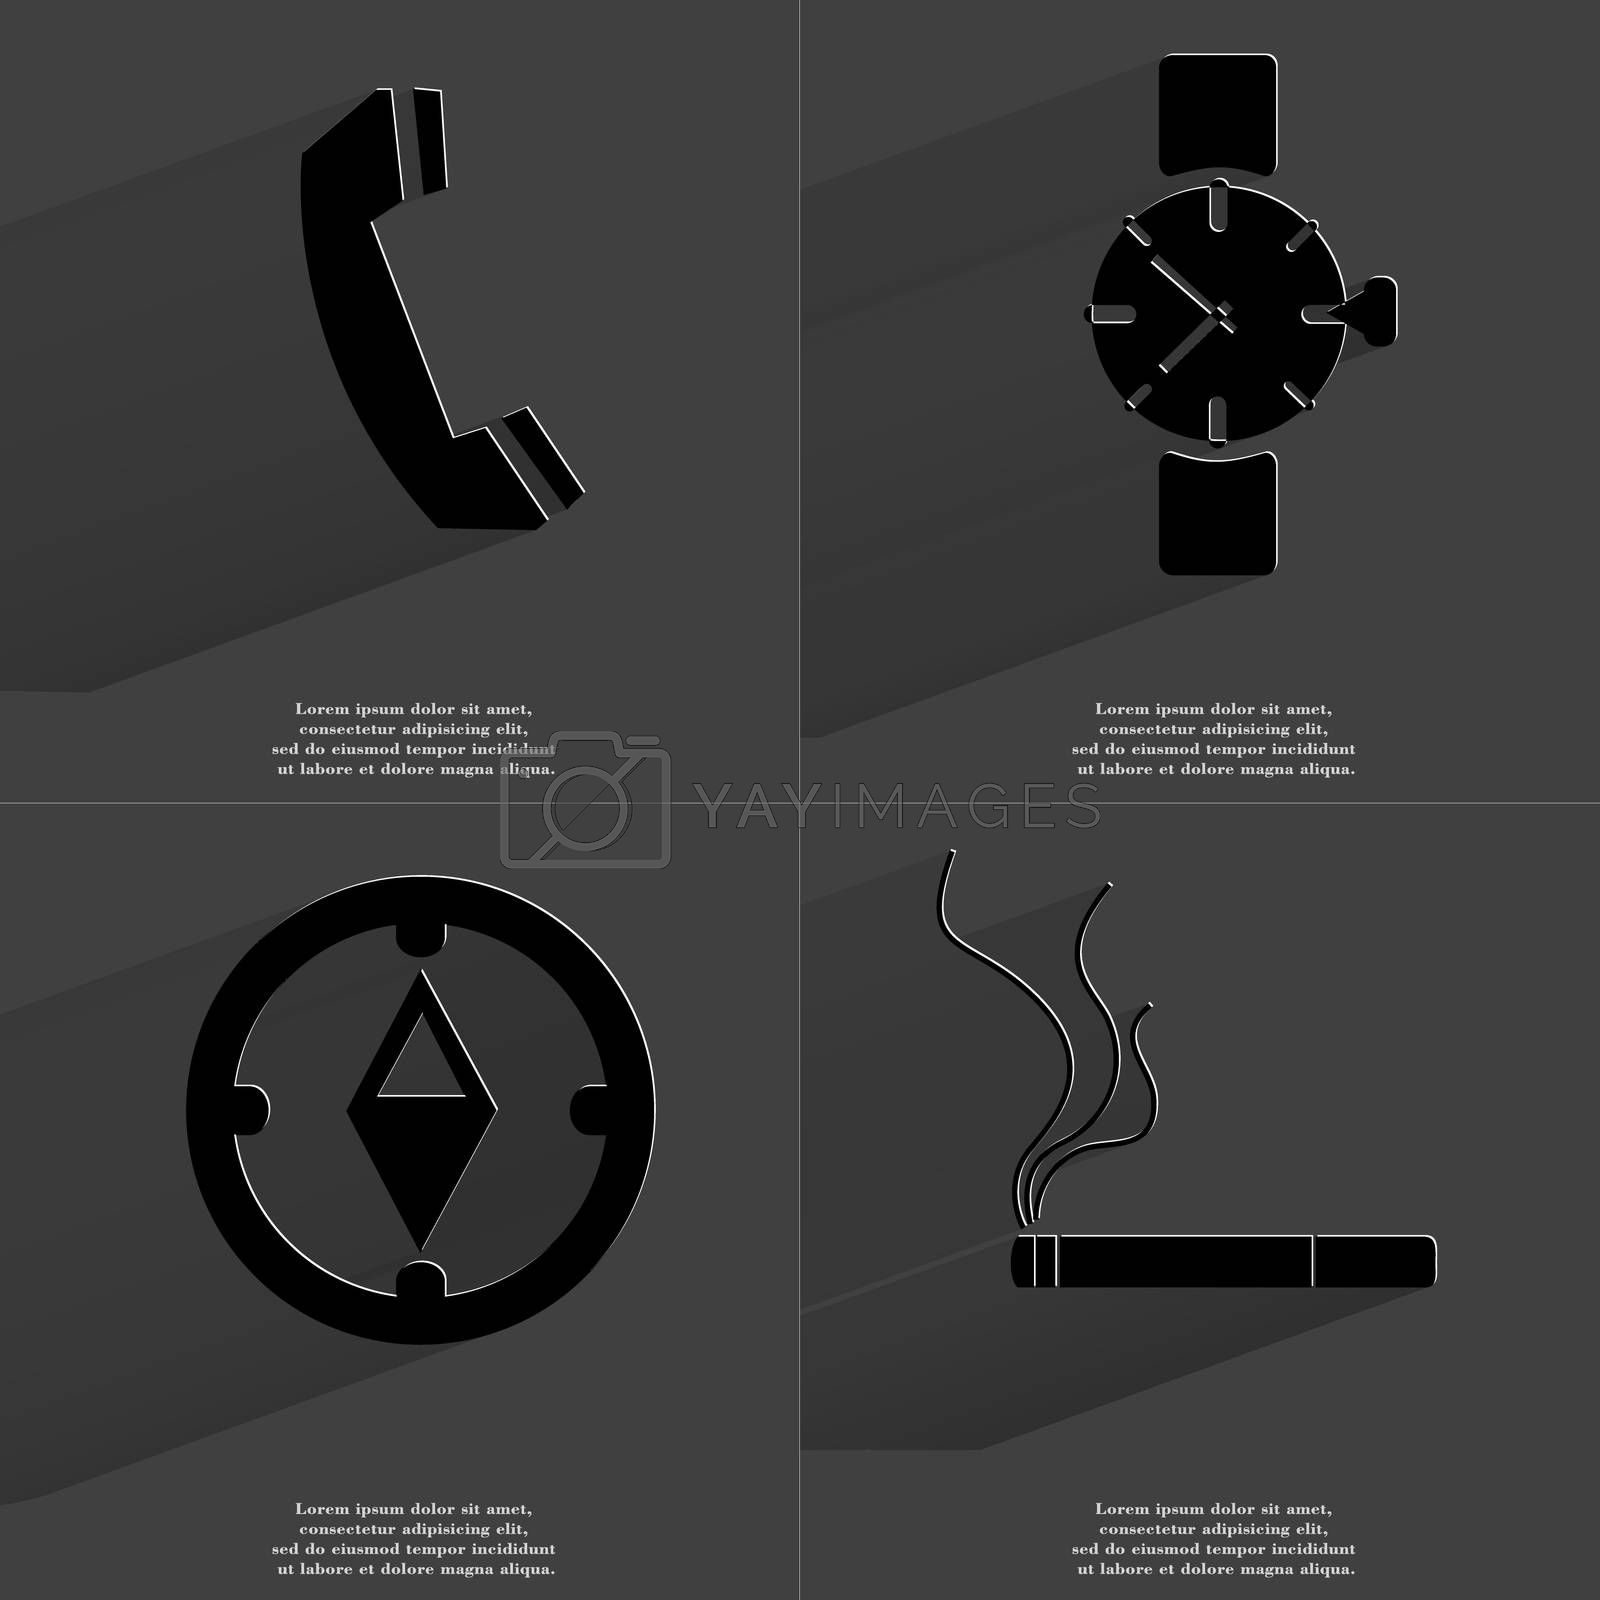 Royalty free image of Receiver, Wrist watch, Compass, Cigarette. Symbols with long shadow. Flat design by serhii_lohvyniuk